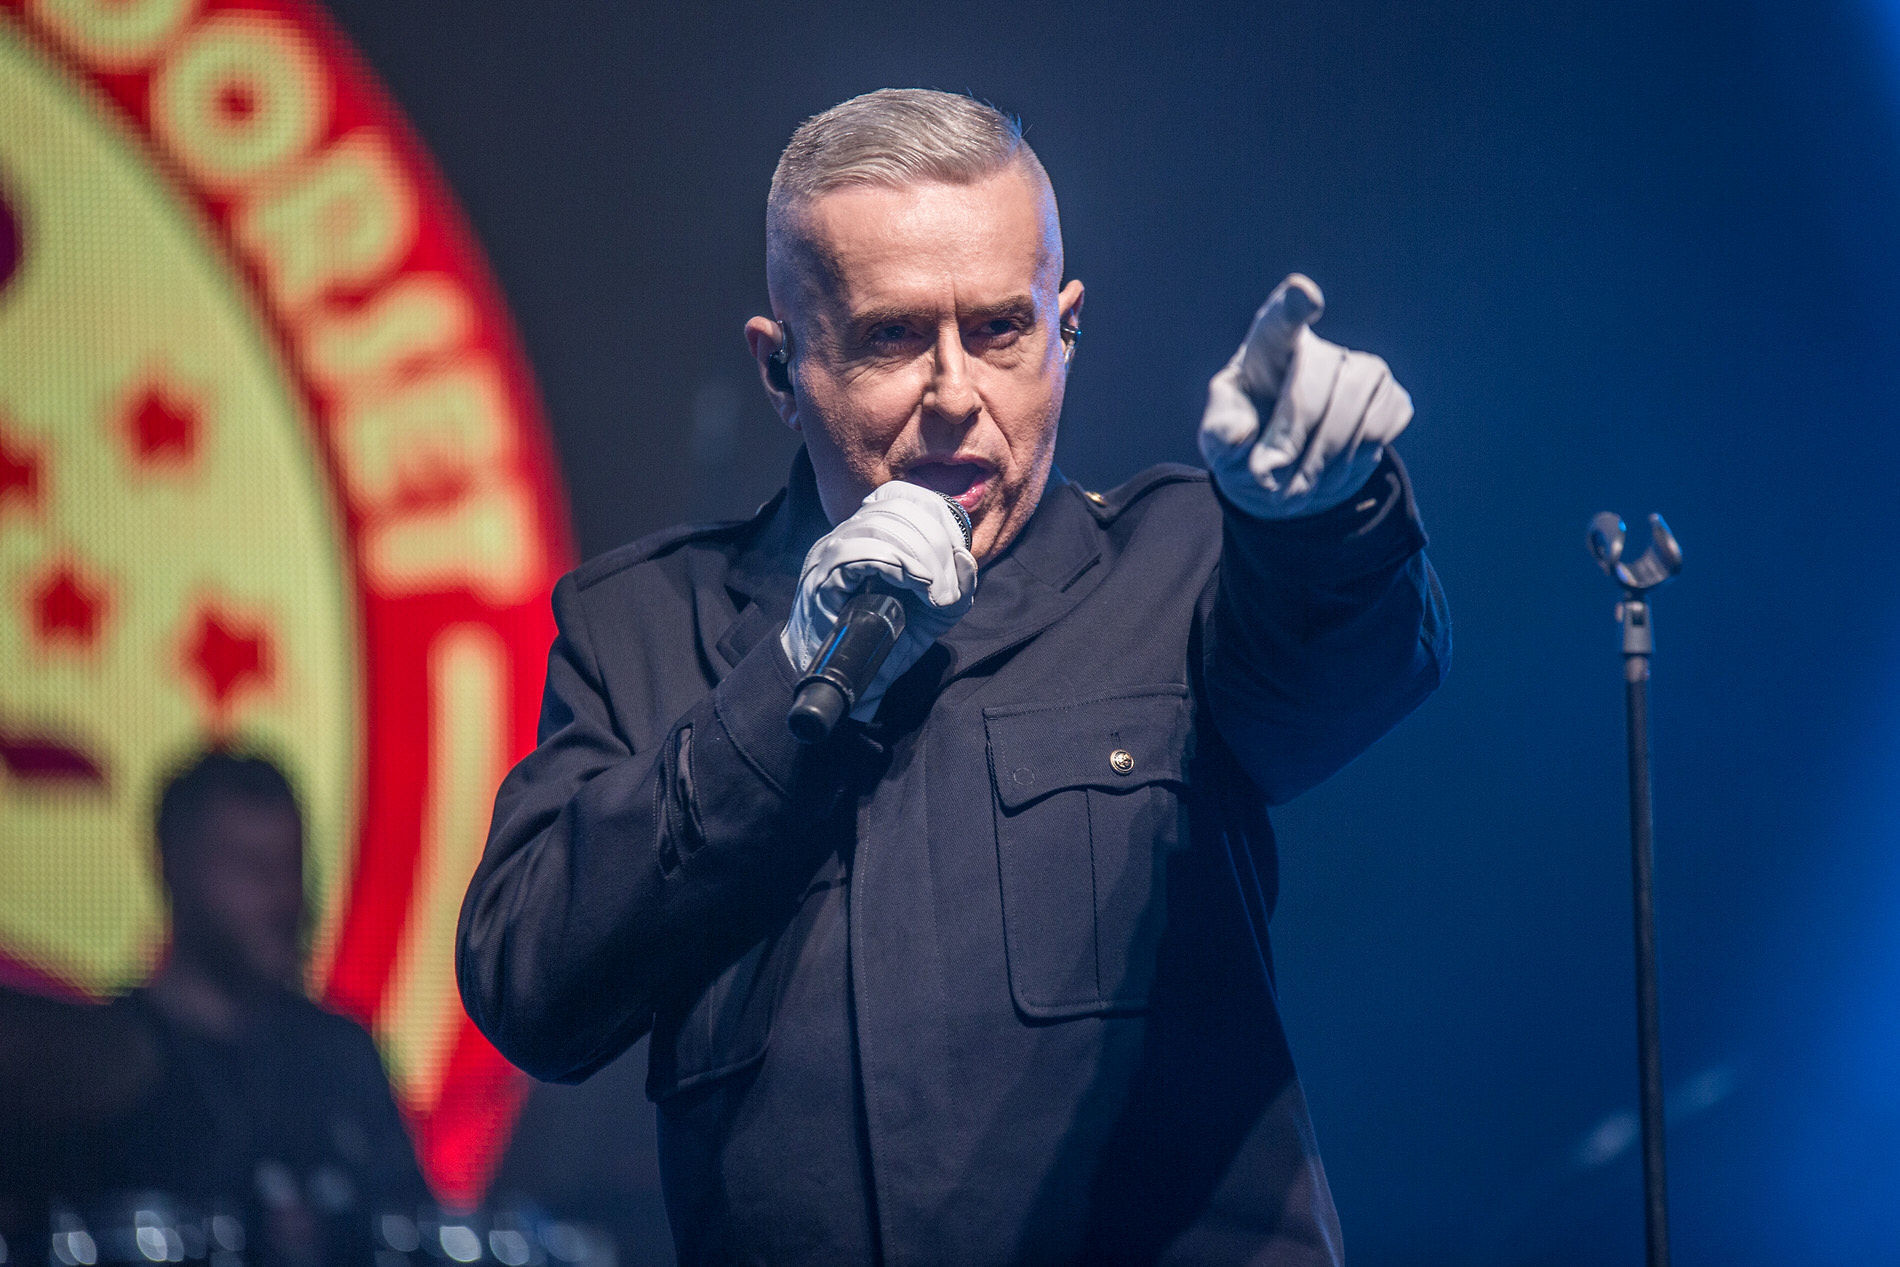 139-CampBestival2017-HollyJohnson-AW-ADAM1213.jpg